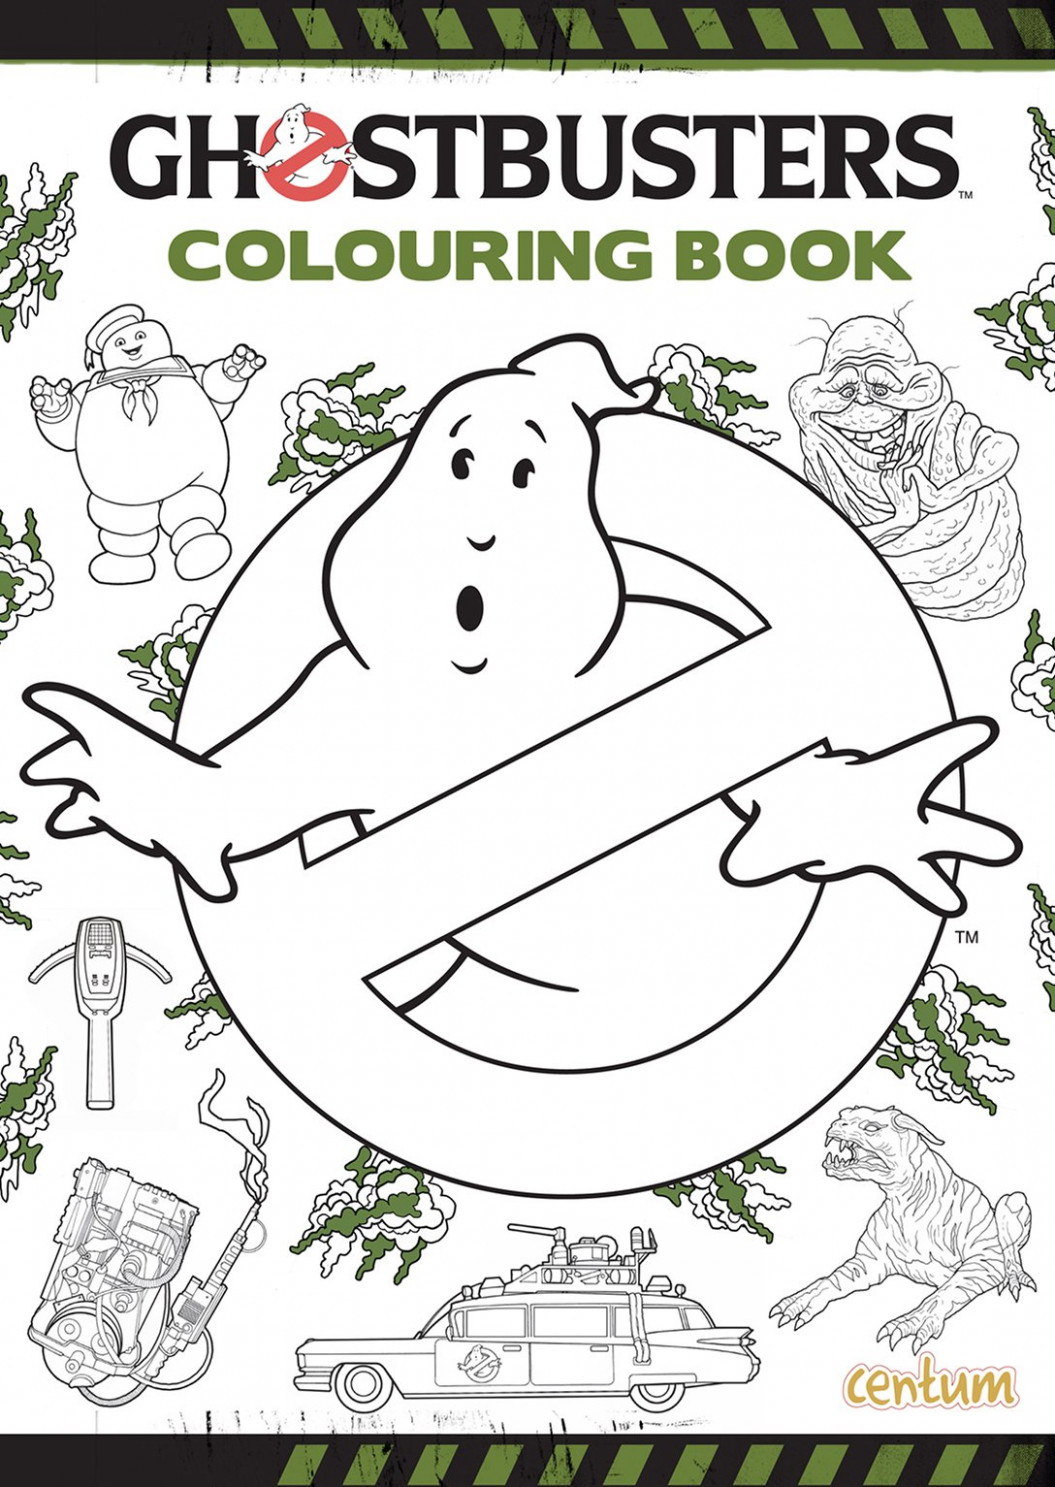 Ghostbusters Colouring Book: 12: Amazon